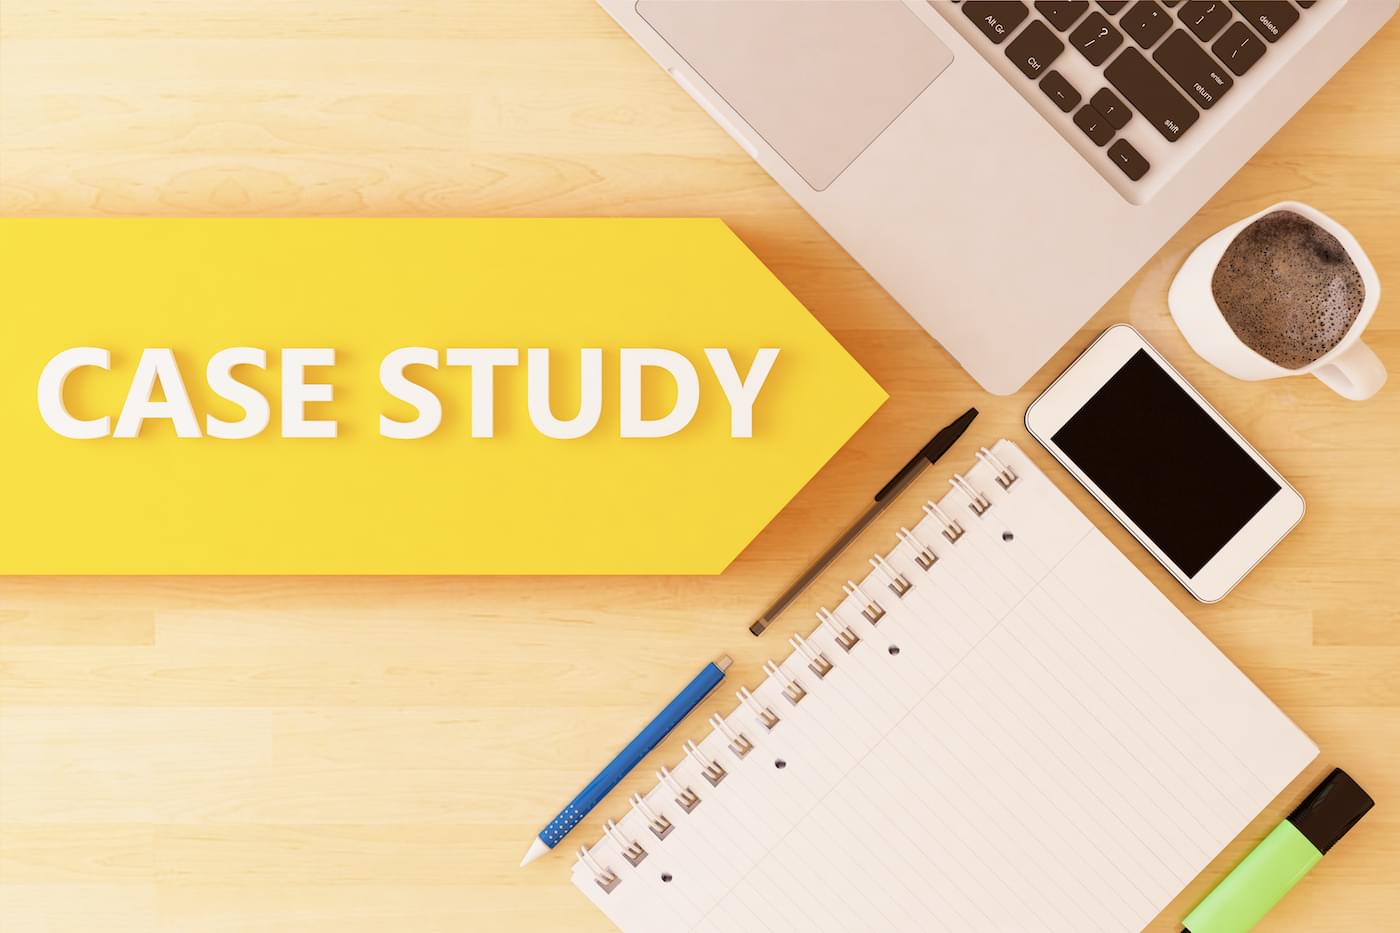 write better case studies with these tips.